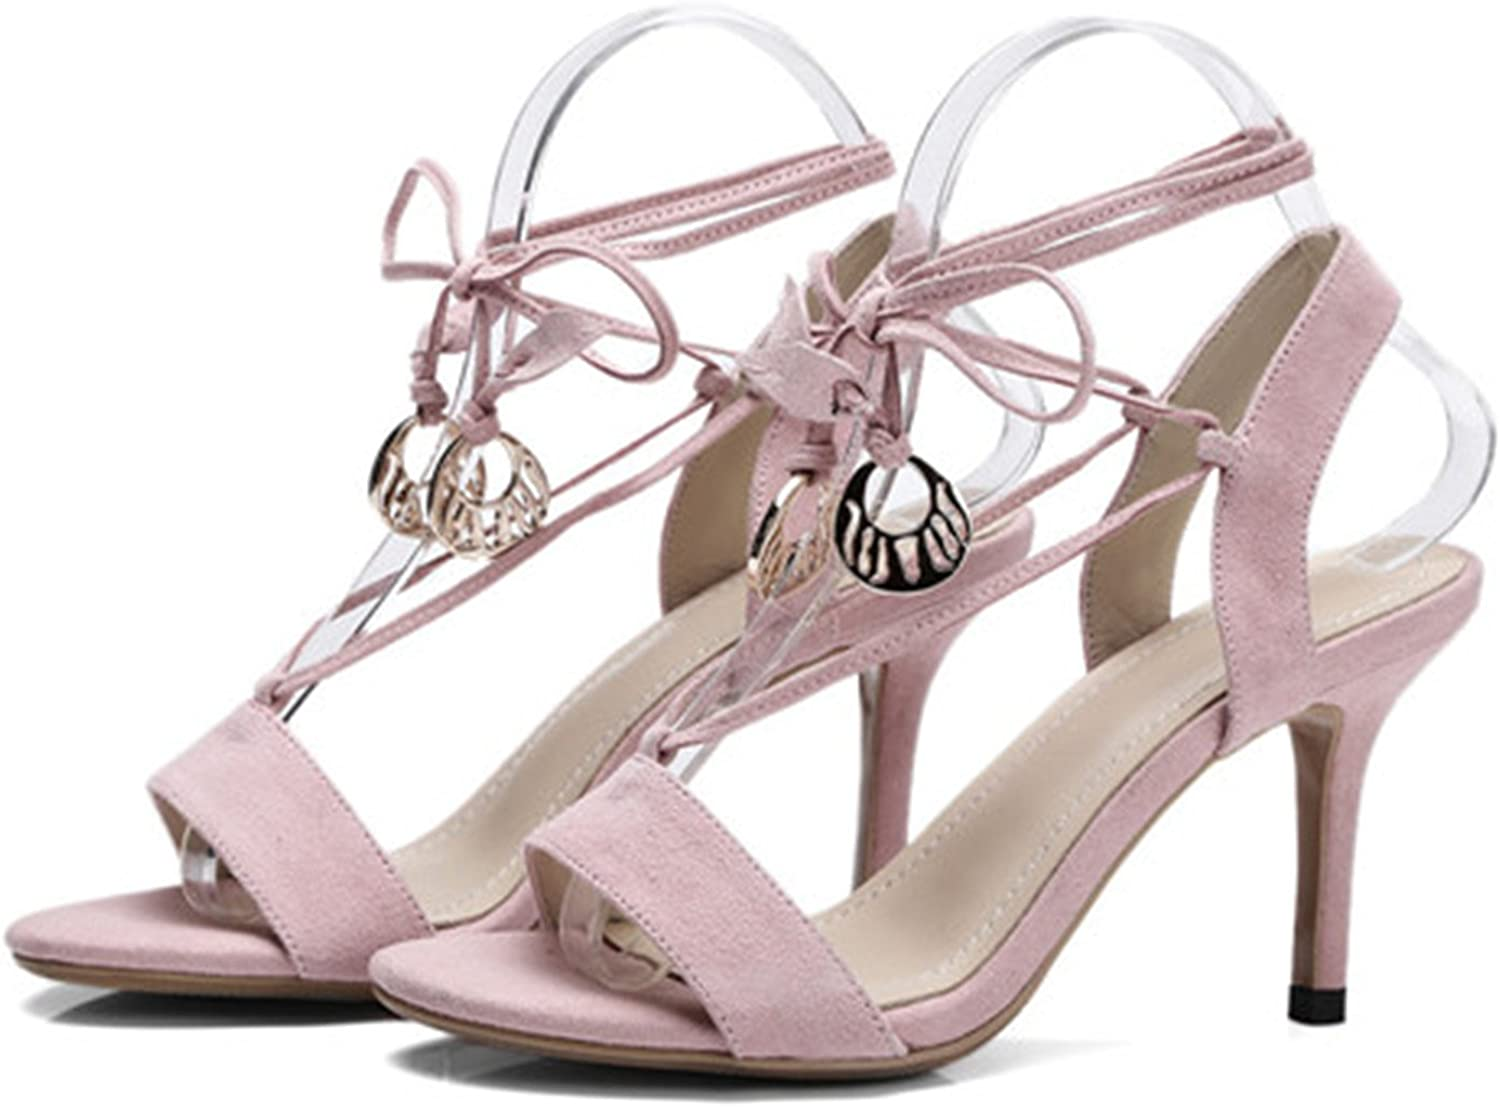 Ivan Johns Ankle Strap Lace-Up Sexy Thin High Heel Summer Sandals Green Black Pink Plus Size 34-42 G02D